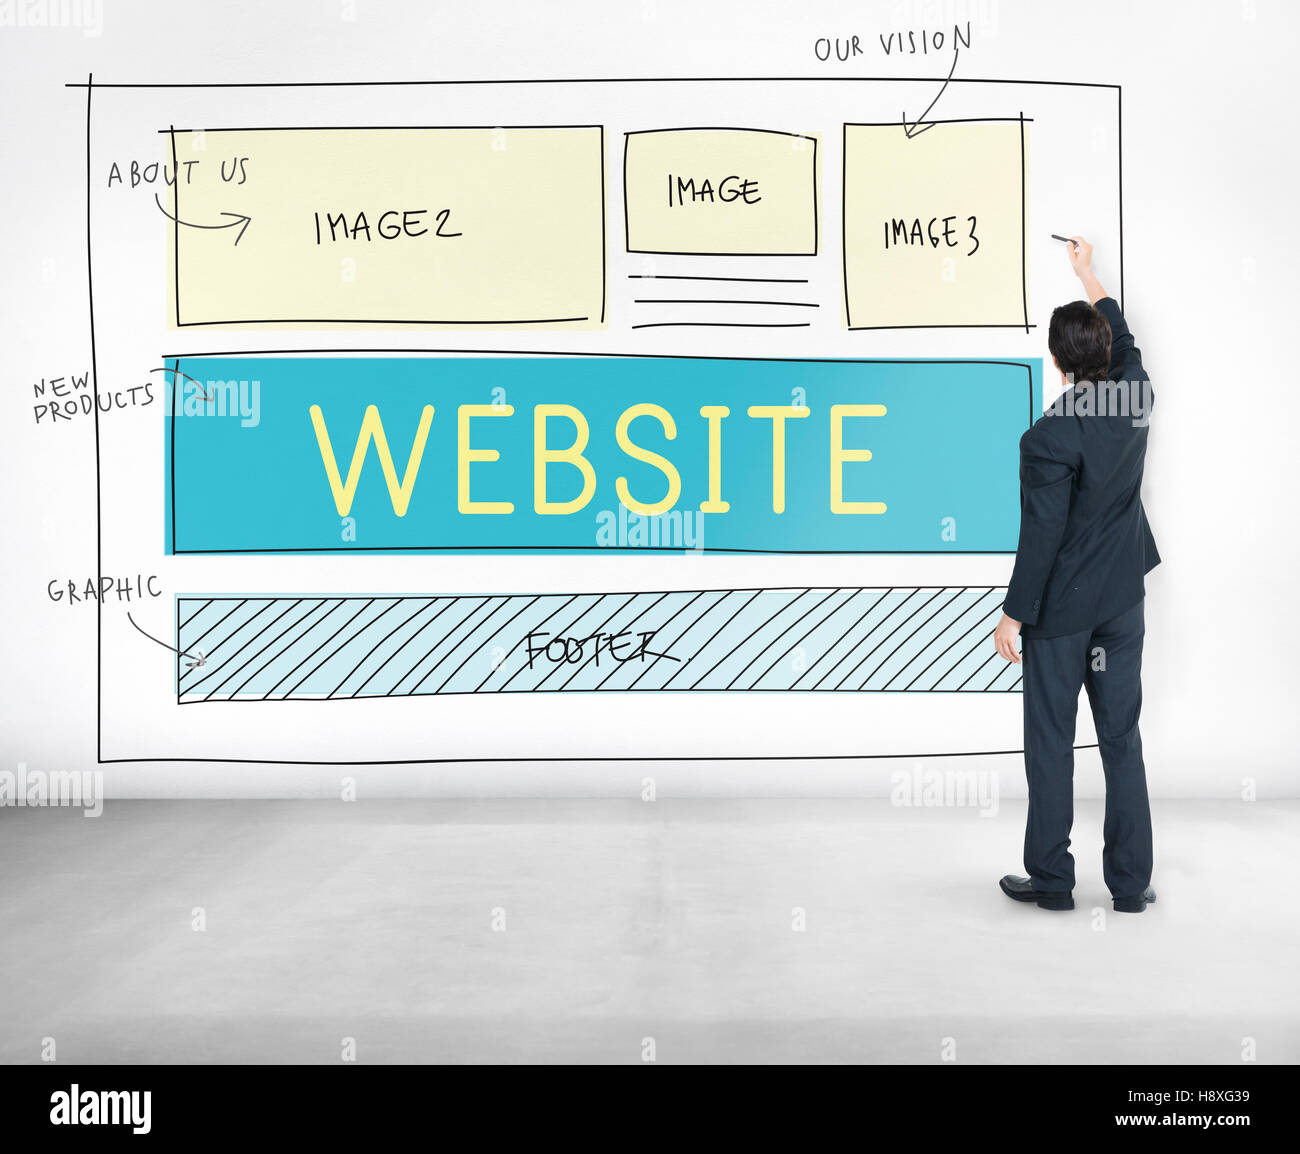 Website Homepage Responsive Design Ideas Concept Stock Photo Alamy